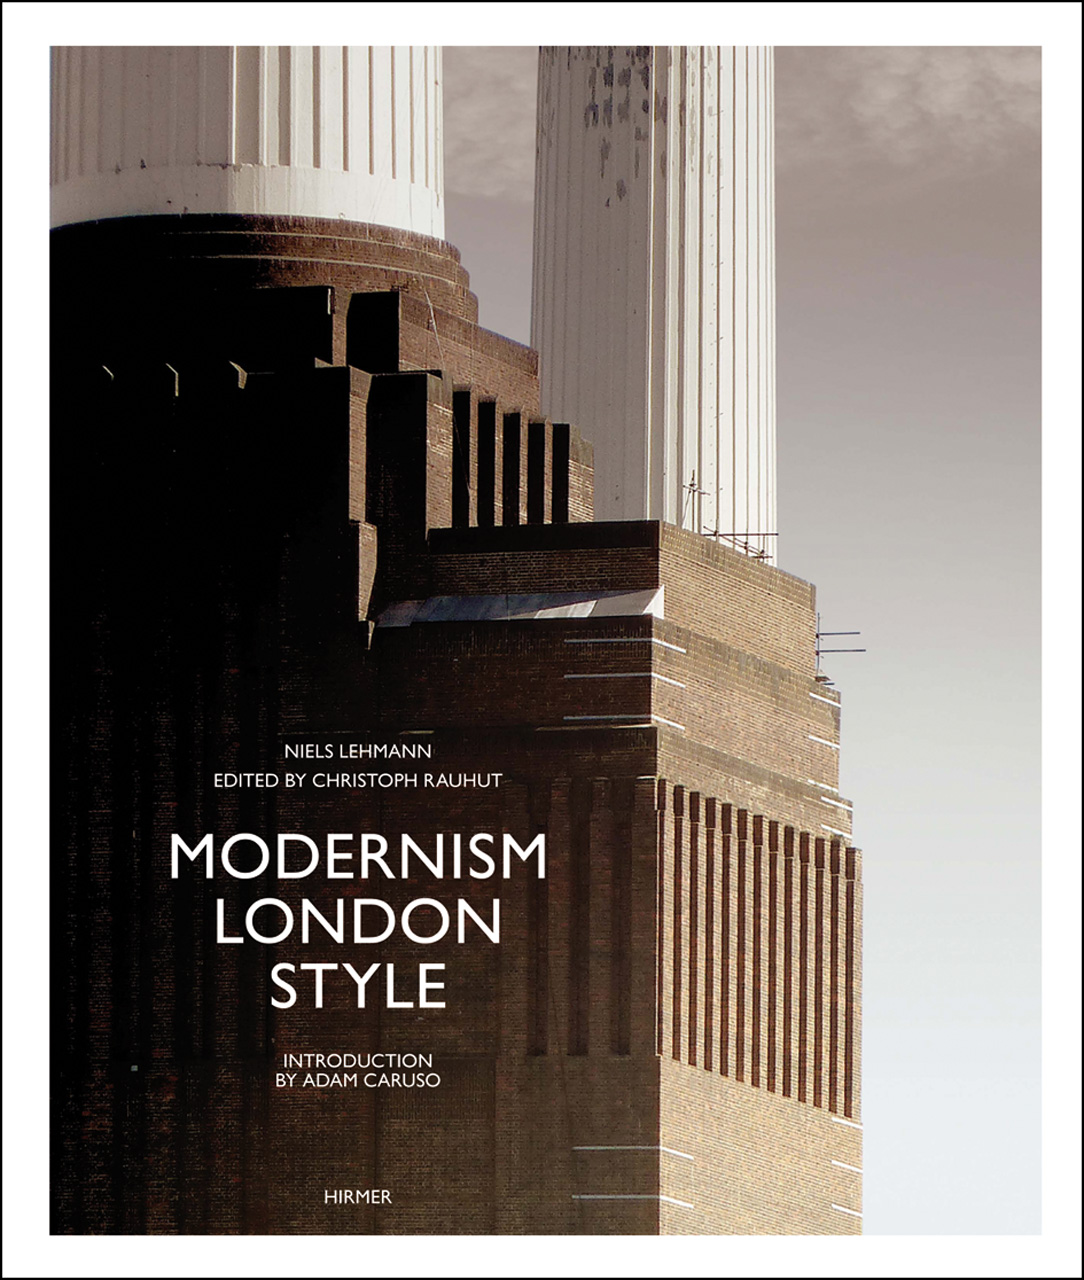 Modernism London Style